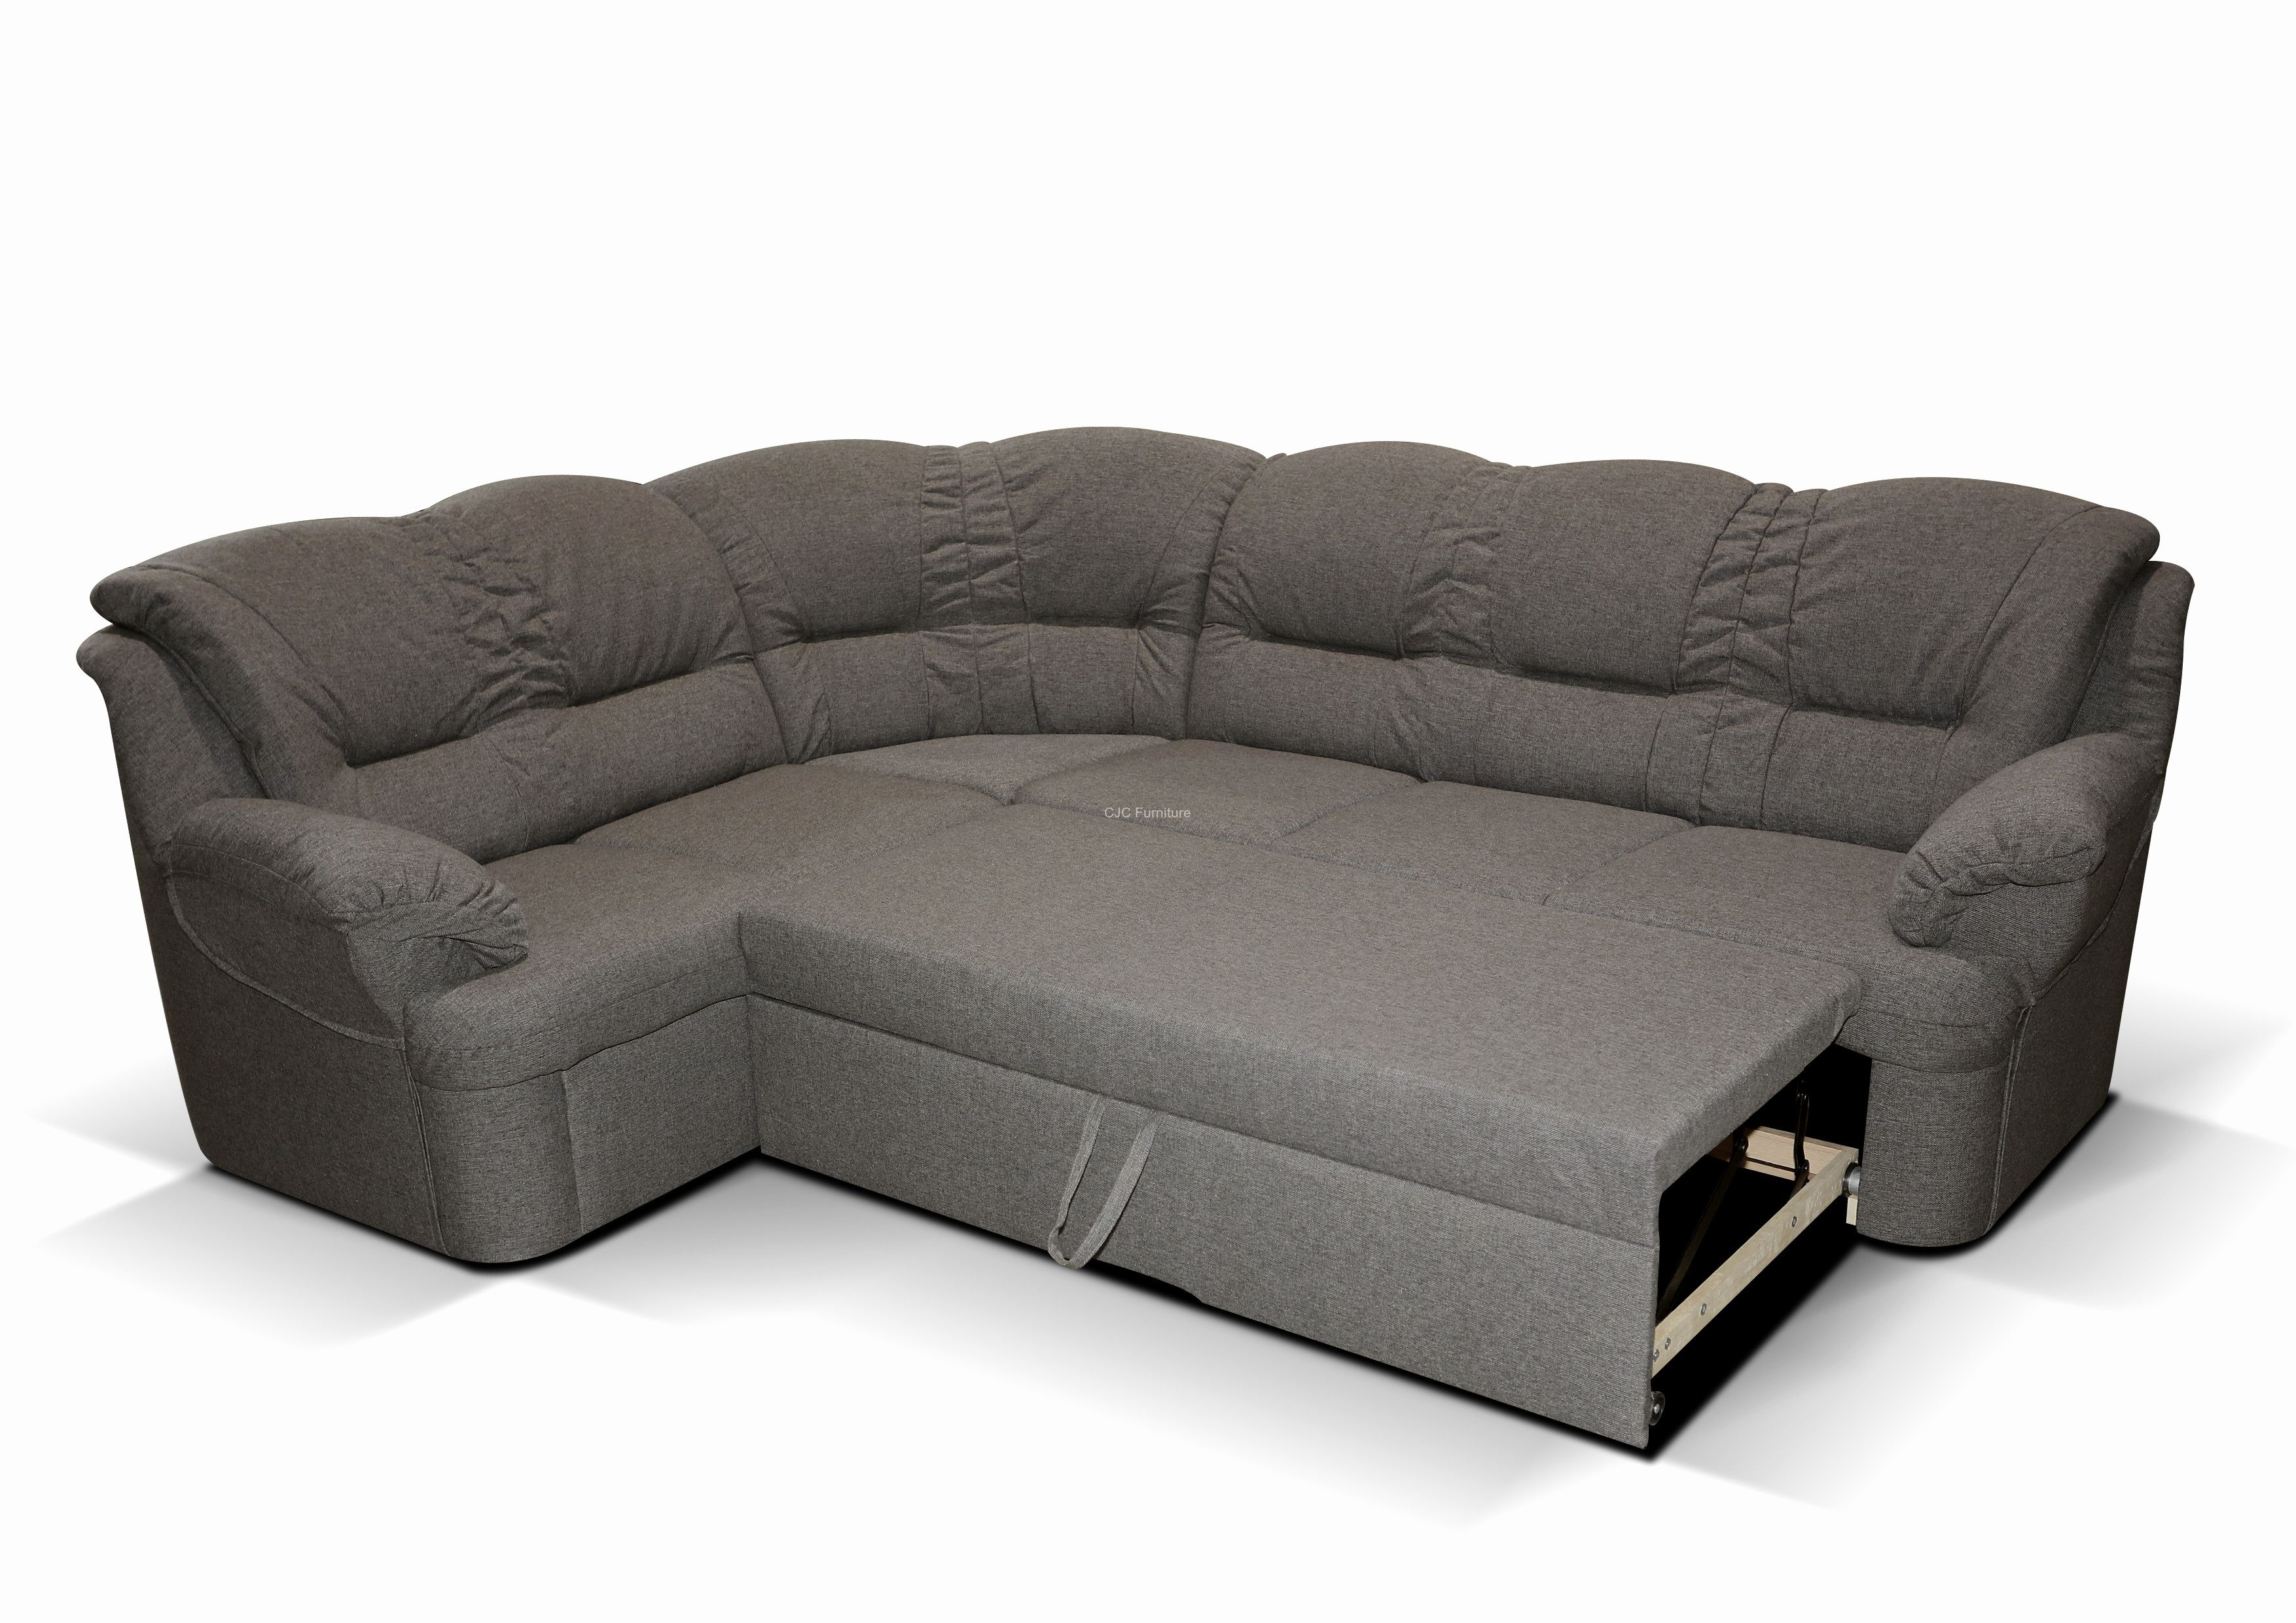 corner unit sofas south africa cheapest glasgow sofa bed units beds with storage uk lisdallas